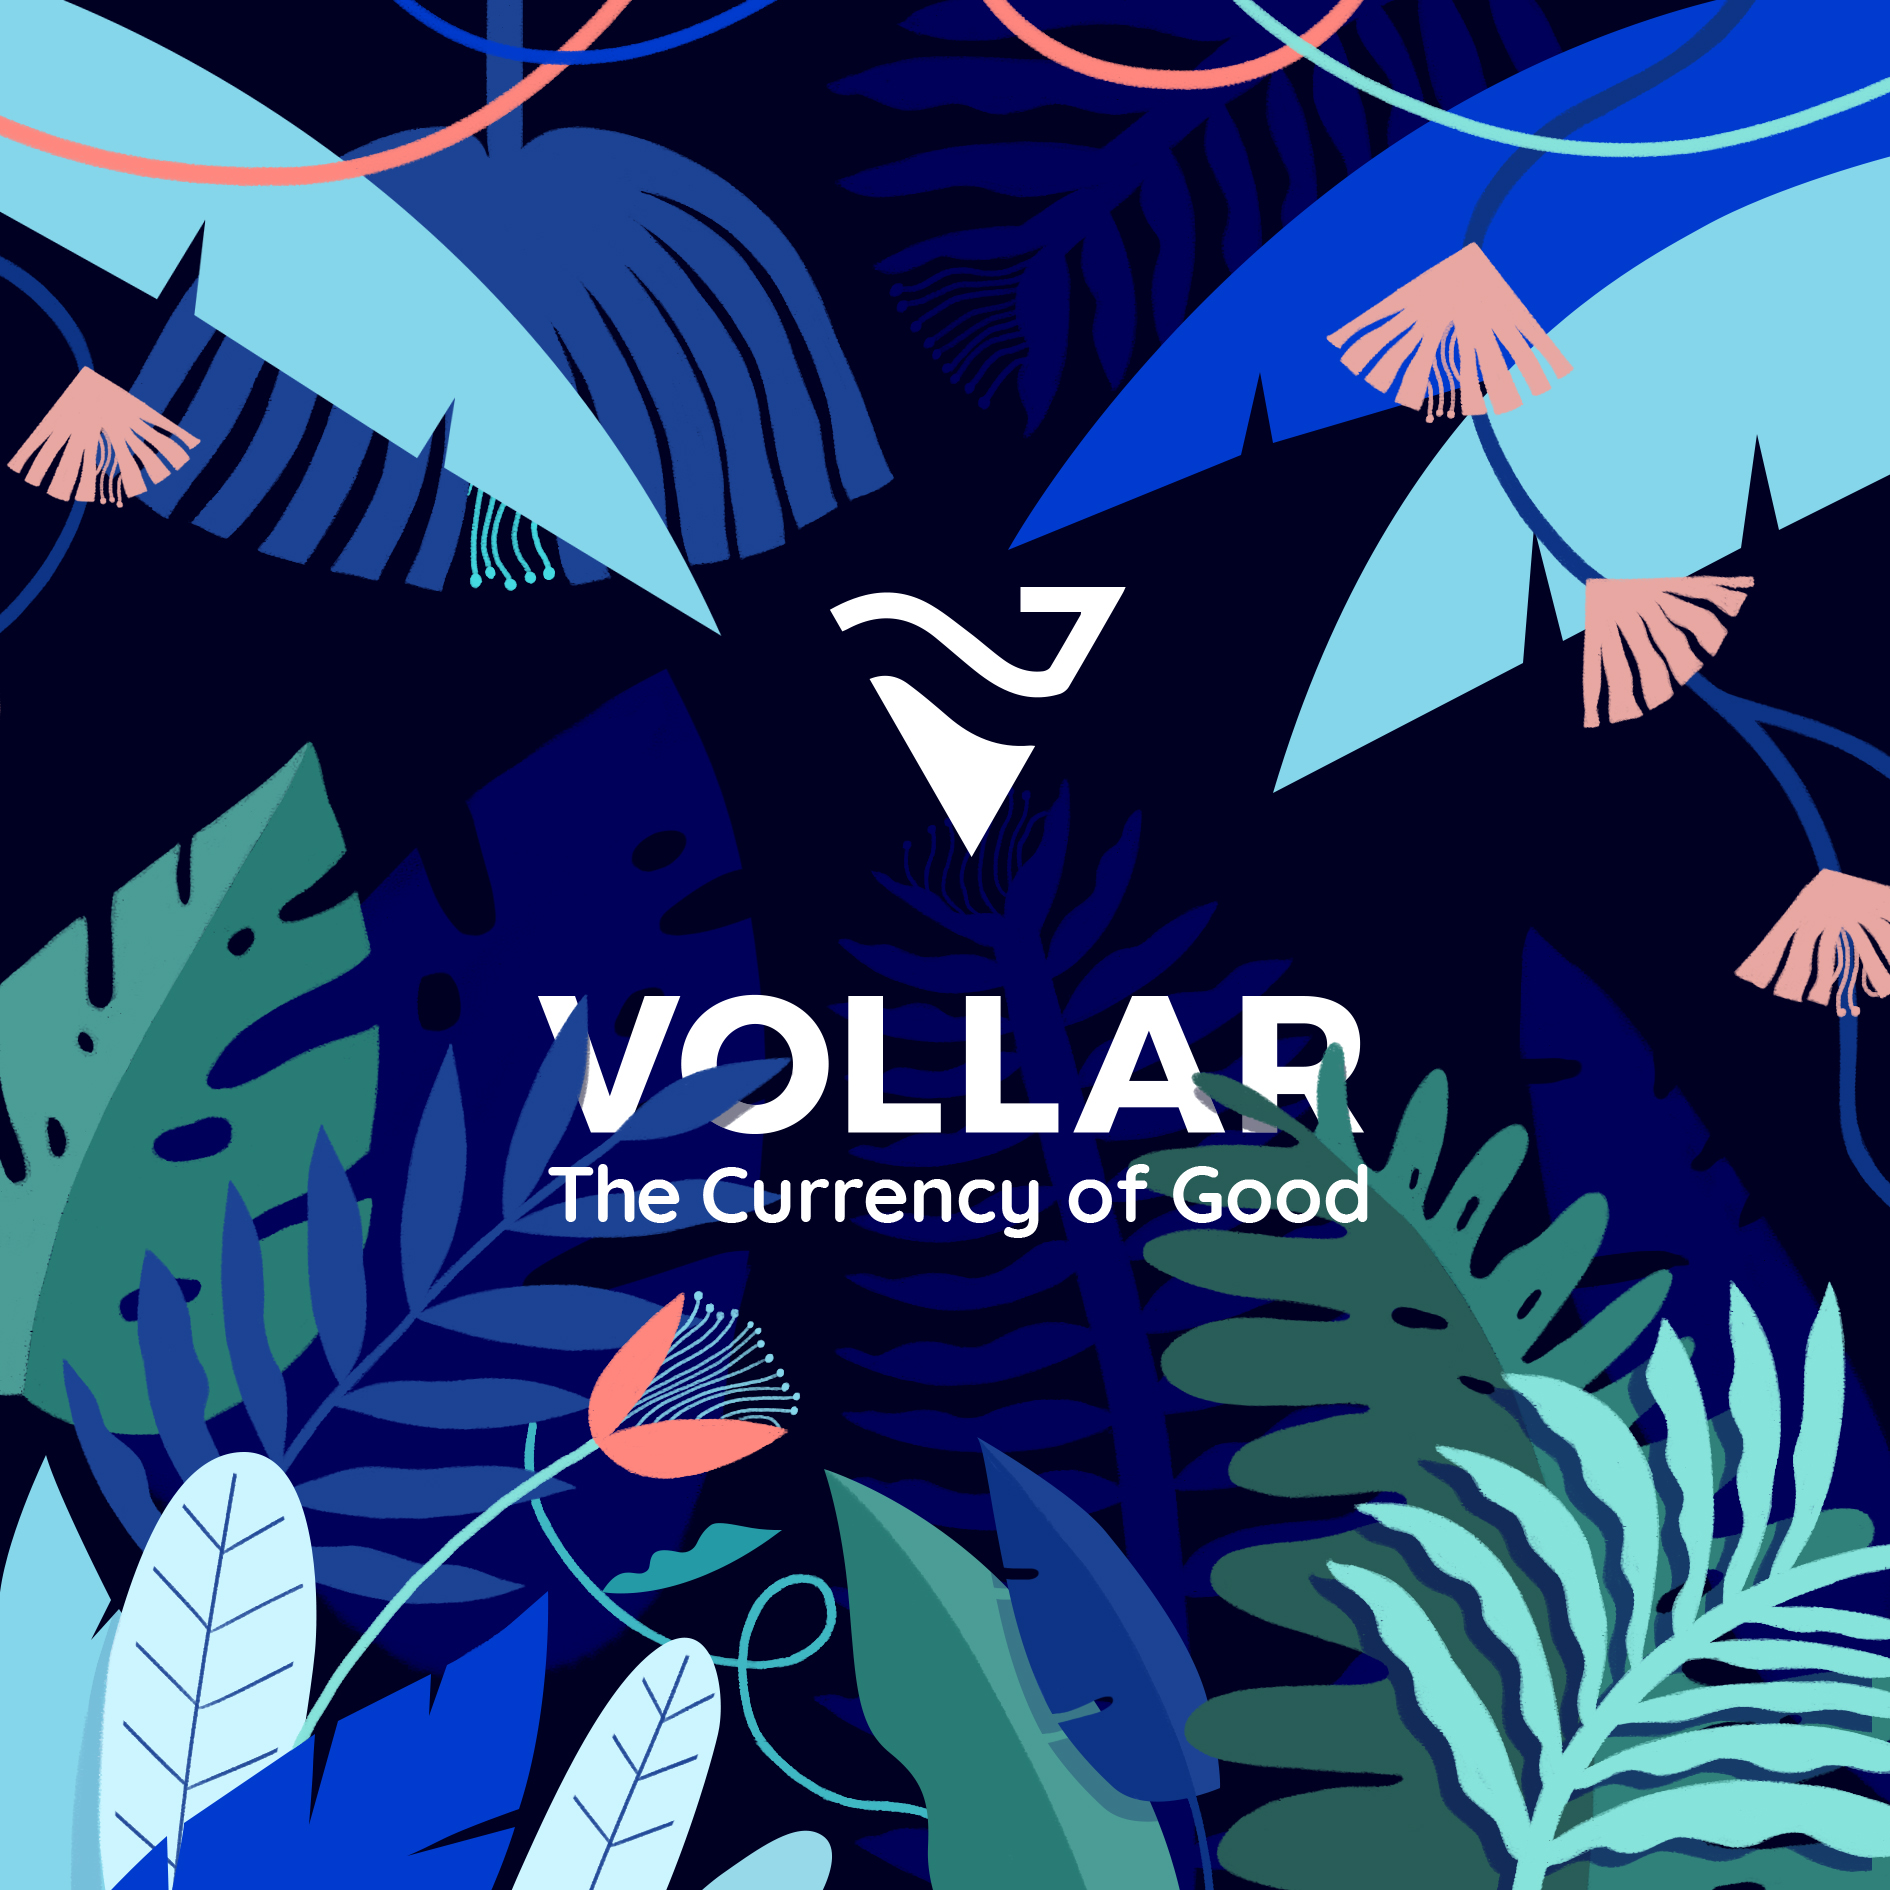 Vollar, The Currency of Good